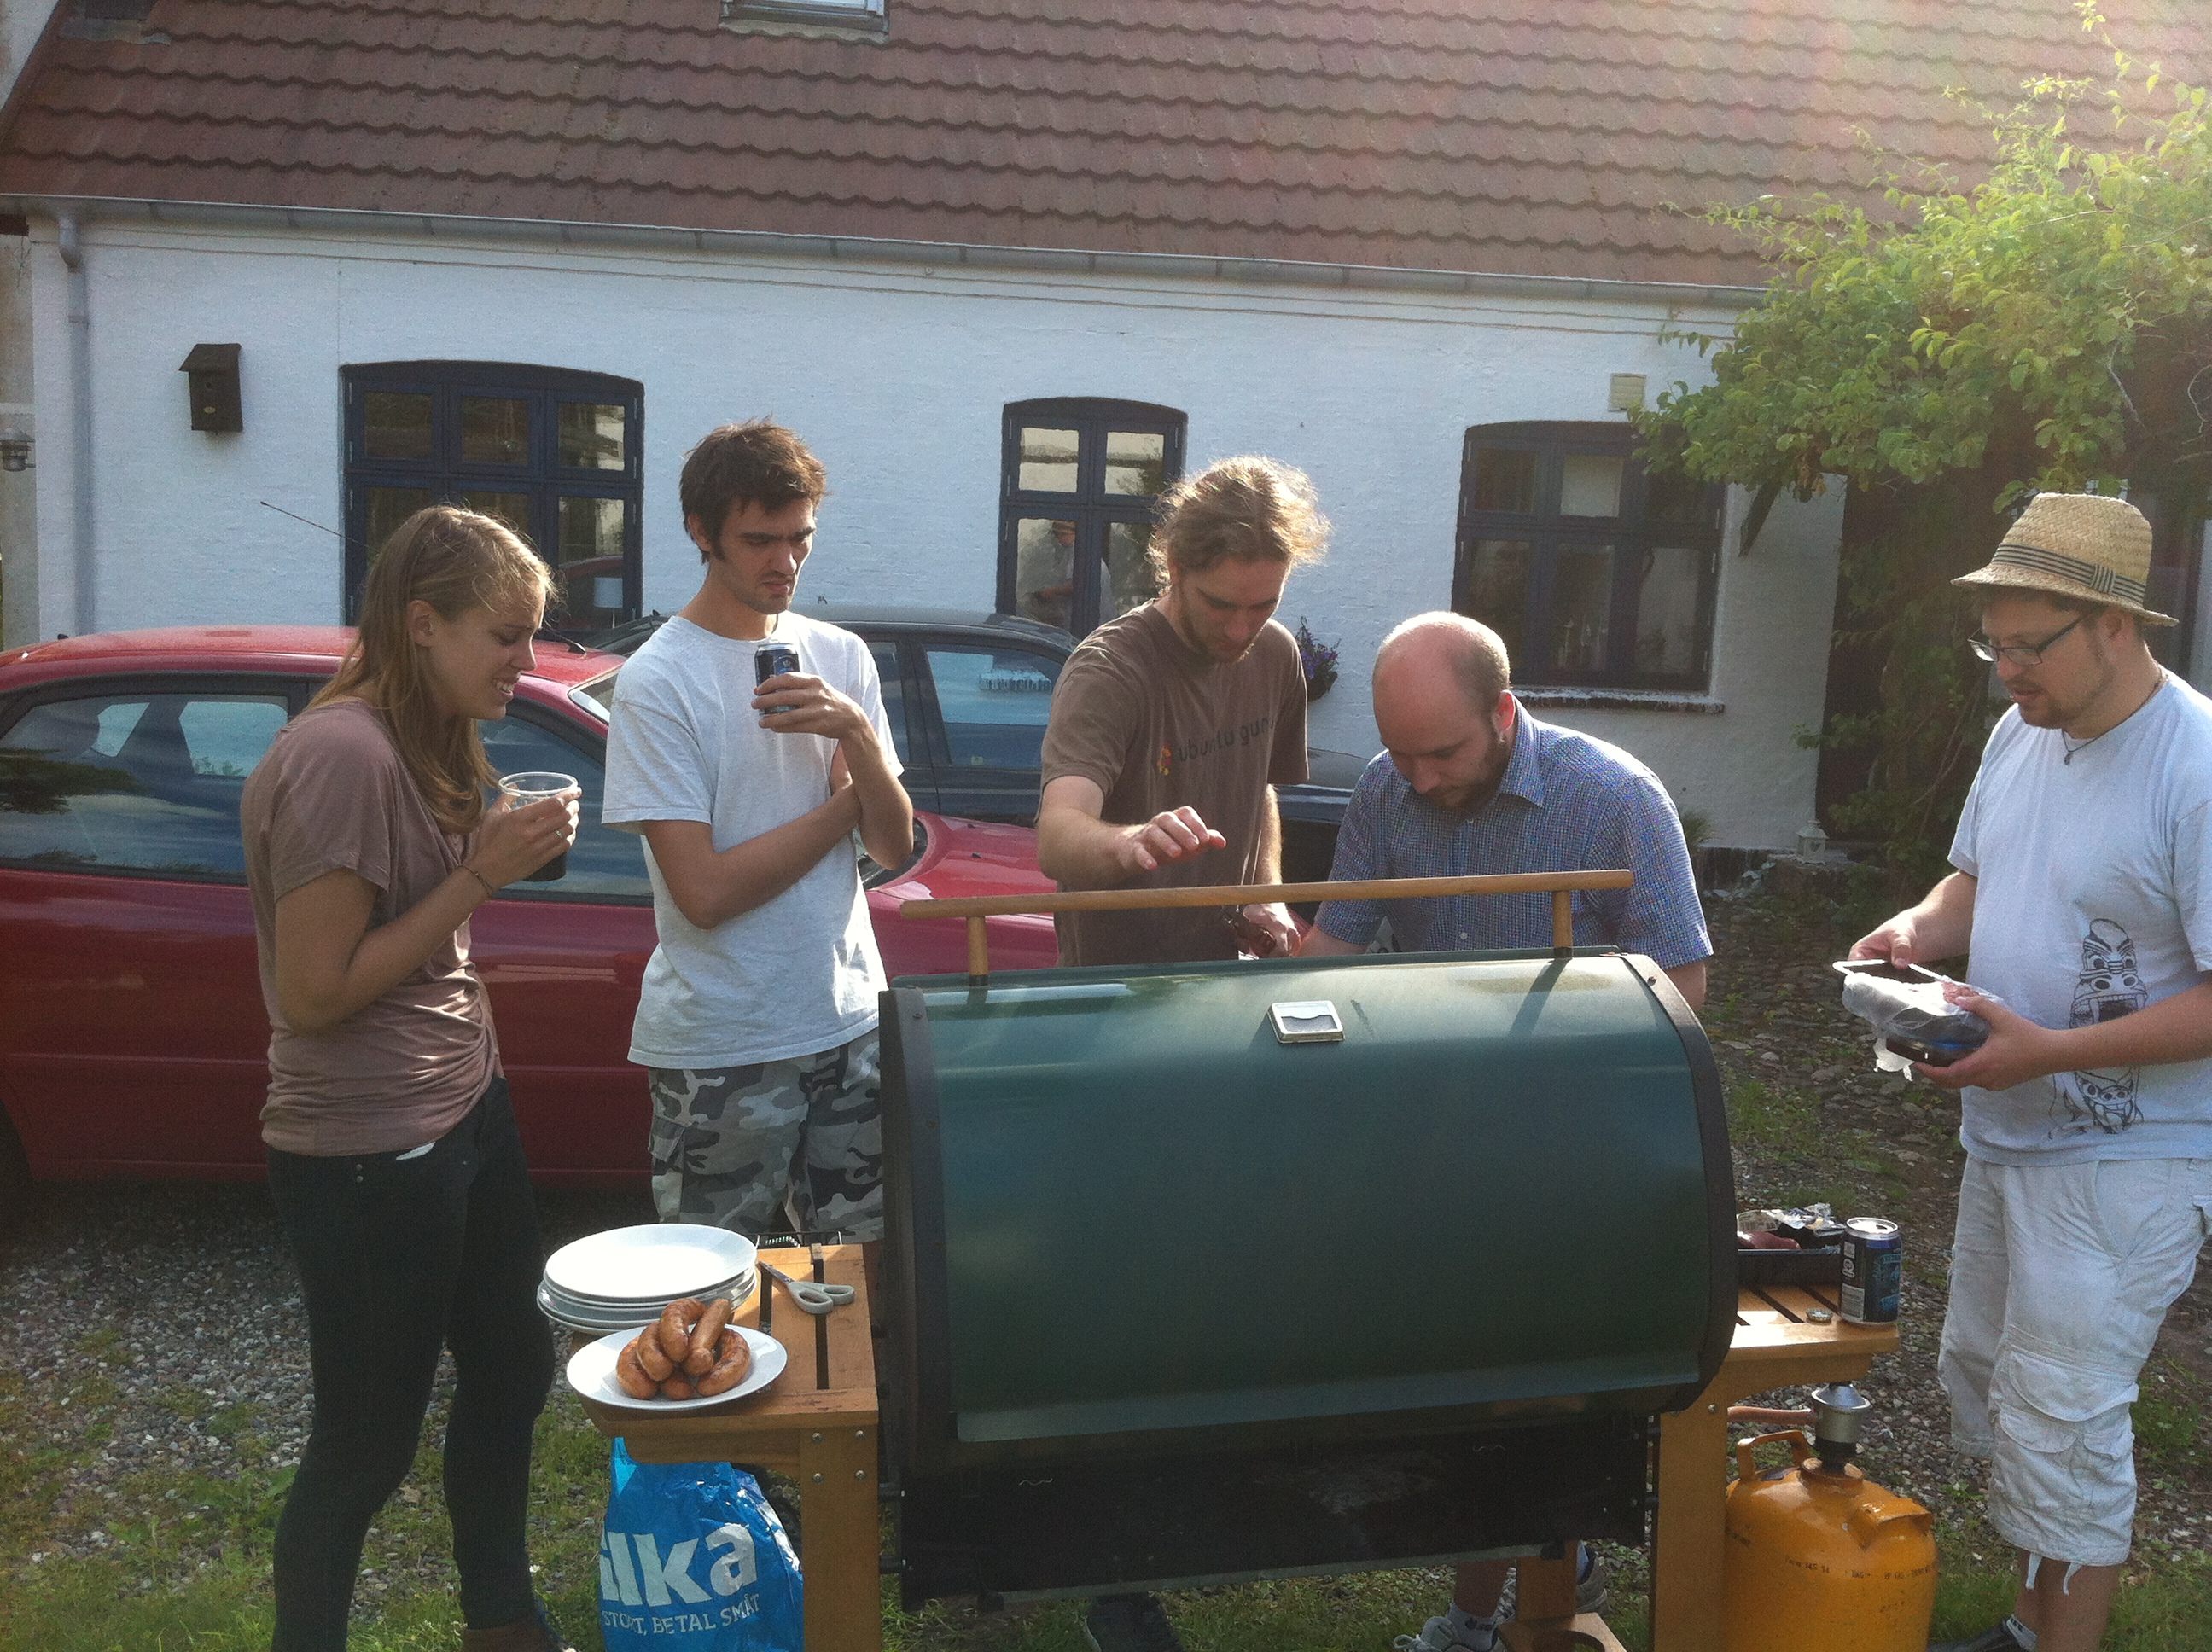 People gathering around the grill